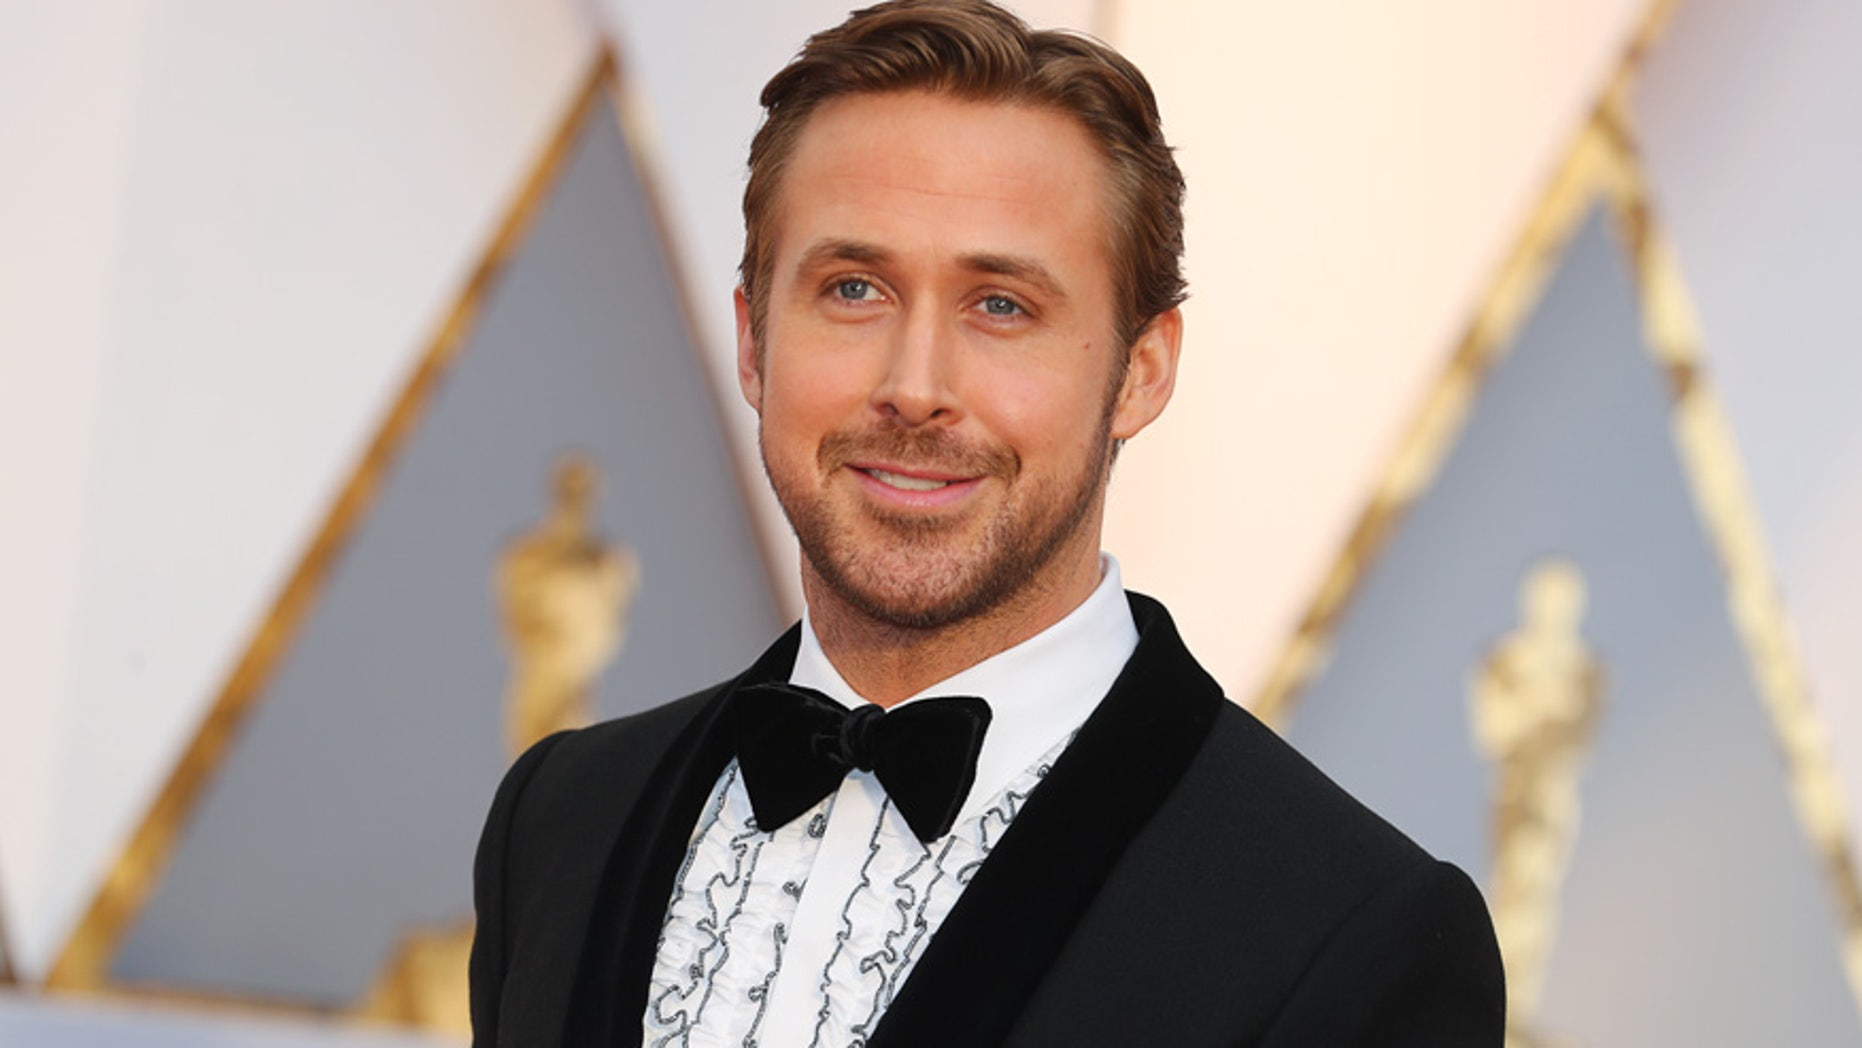 008a6c724c5 Ryan Gosling stops by Toronto coffee shop after management lobbies ...